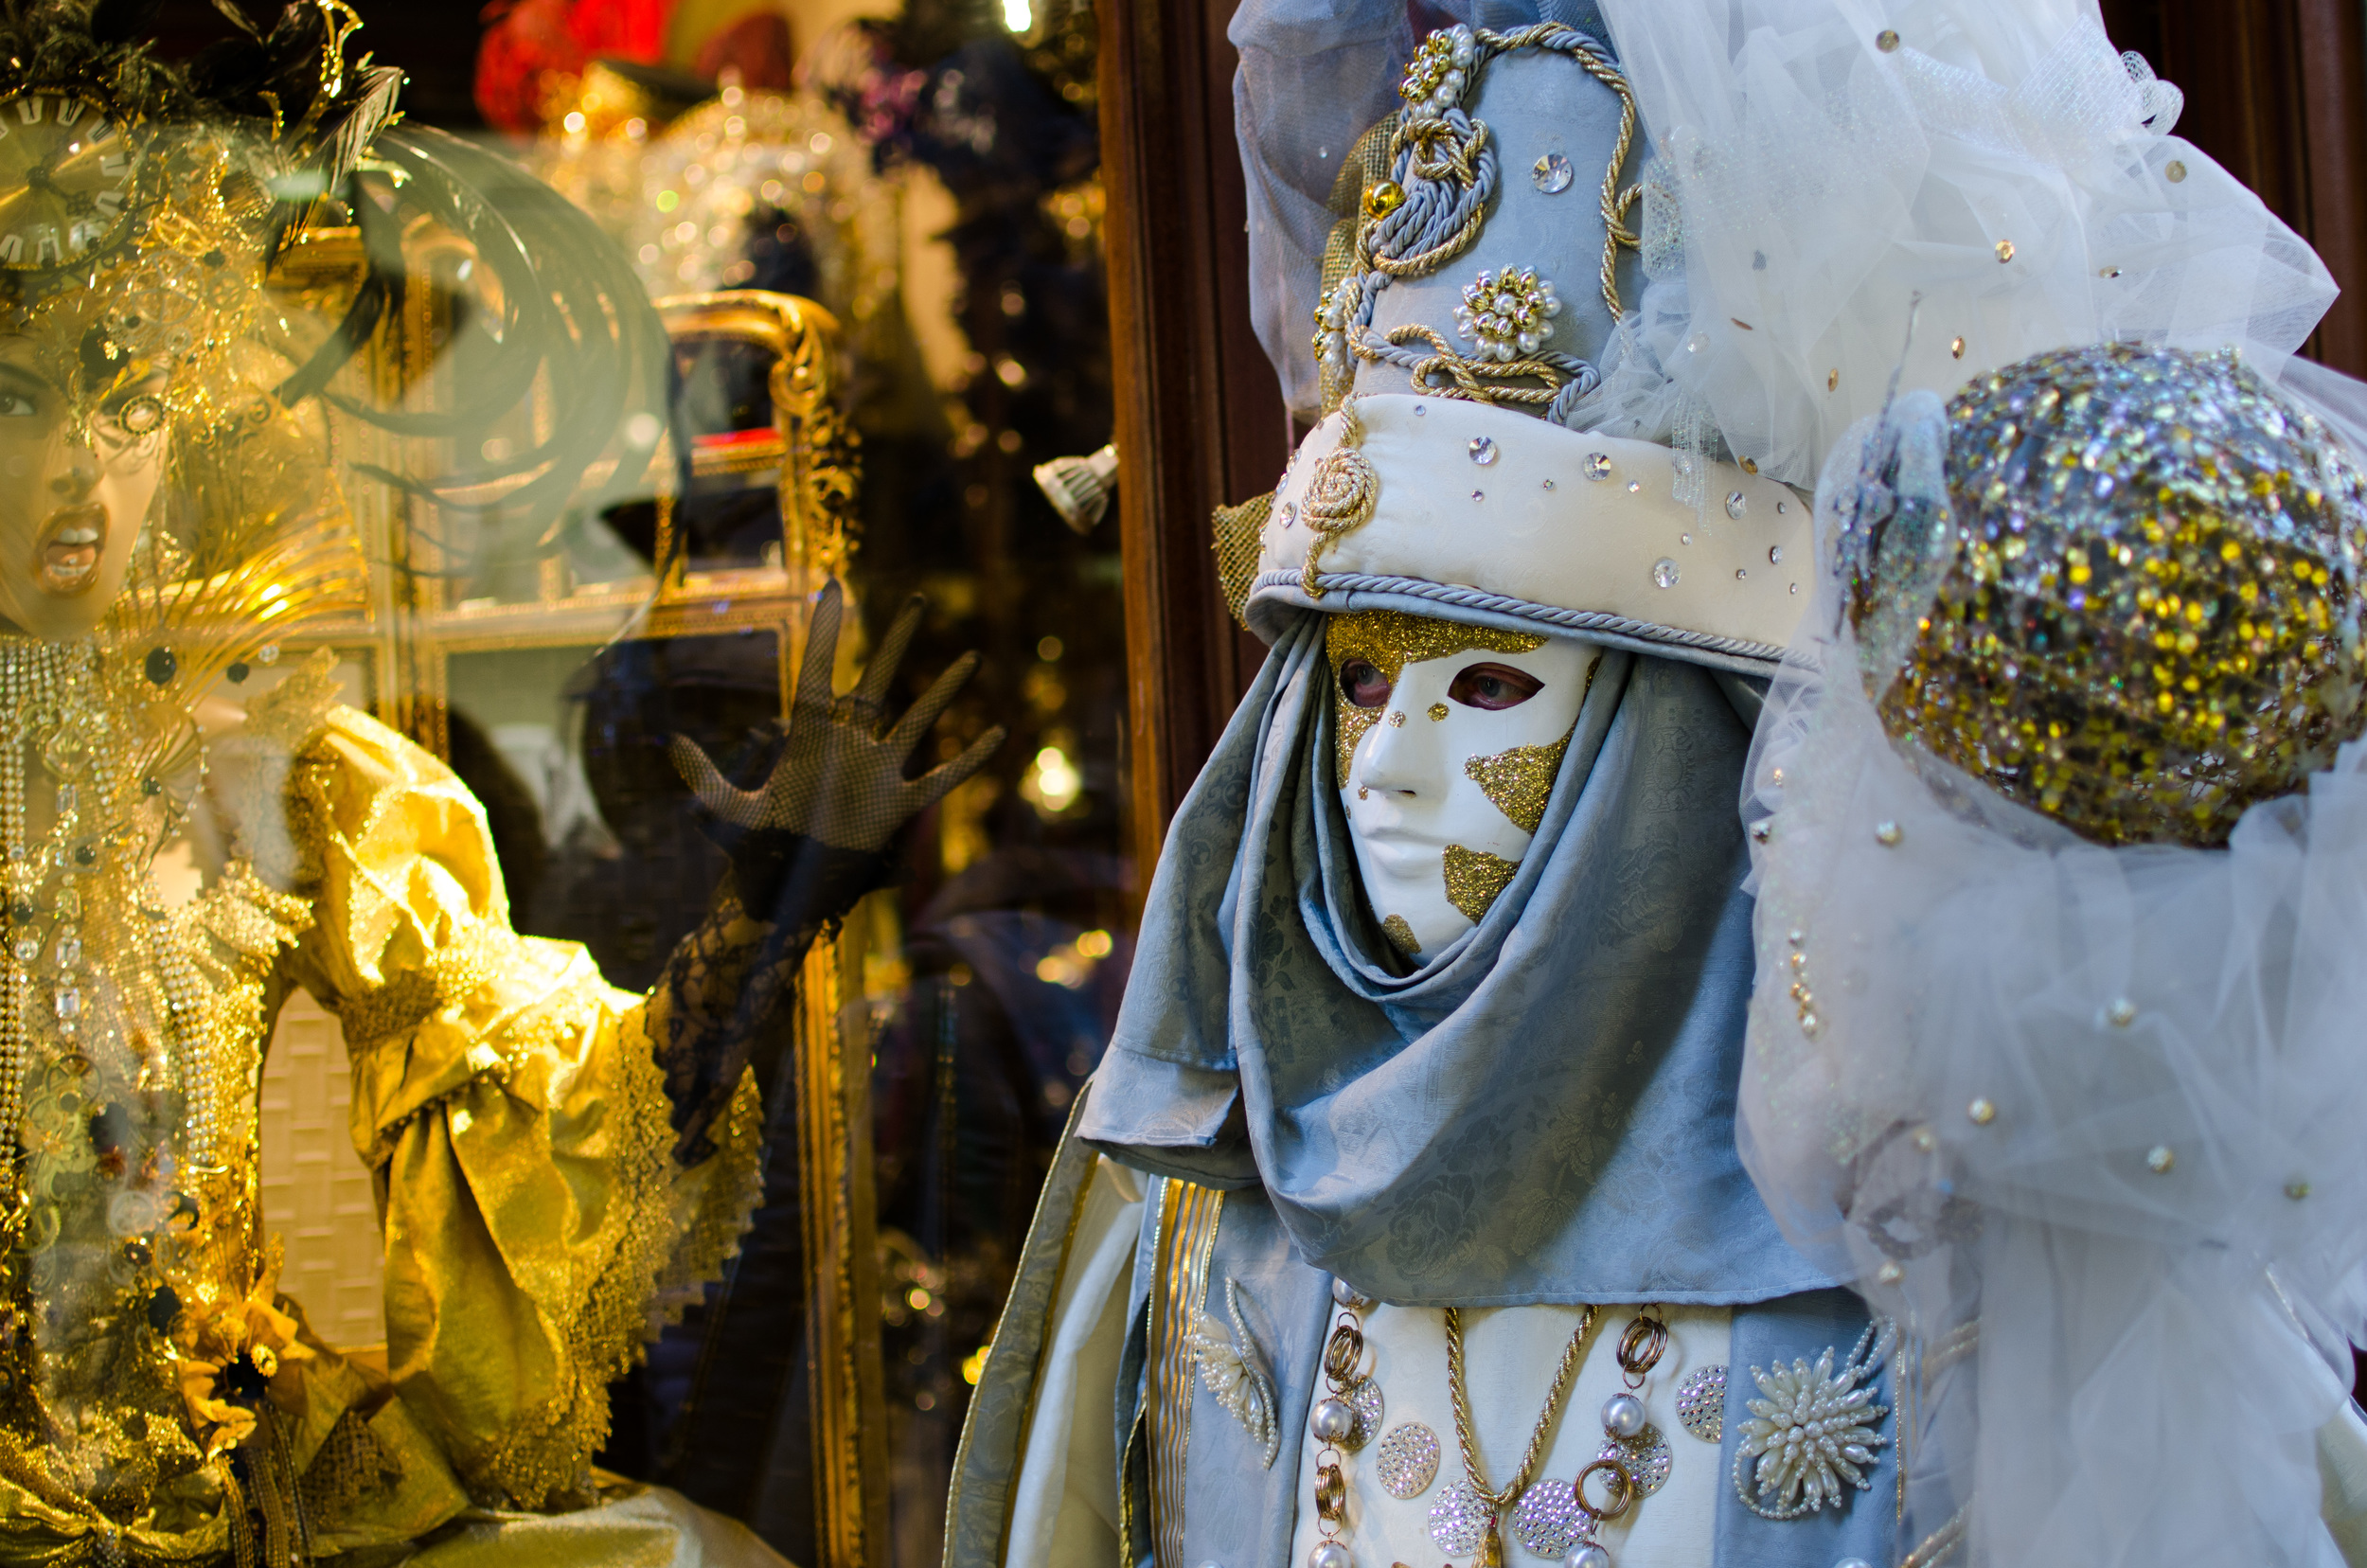 Carnevale costumes